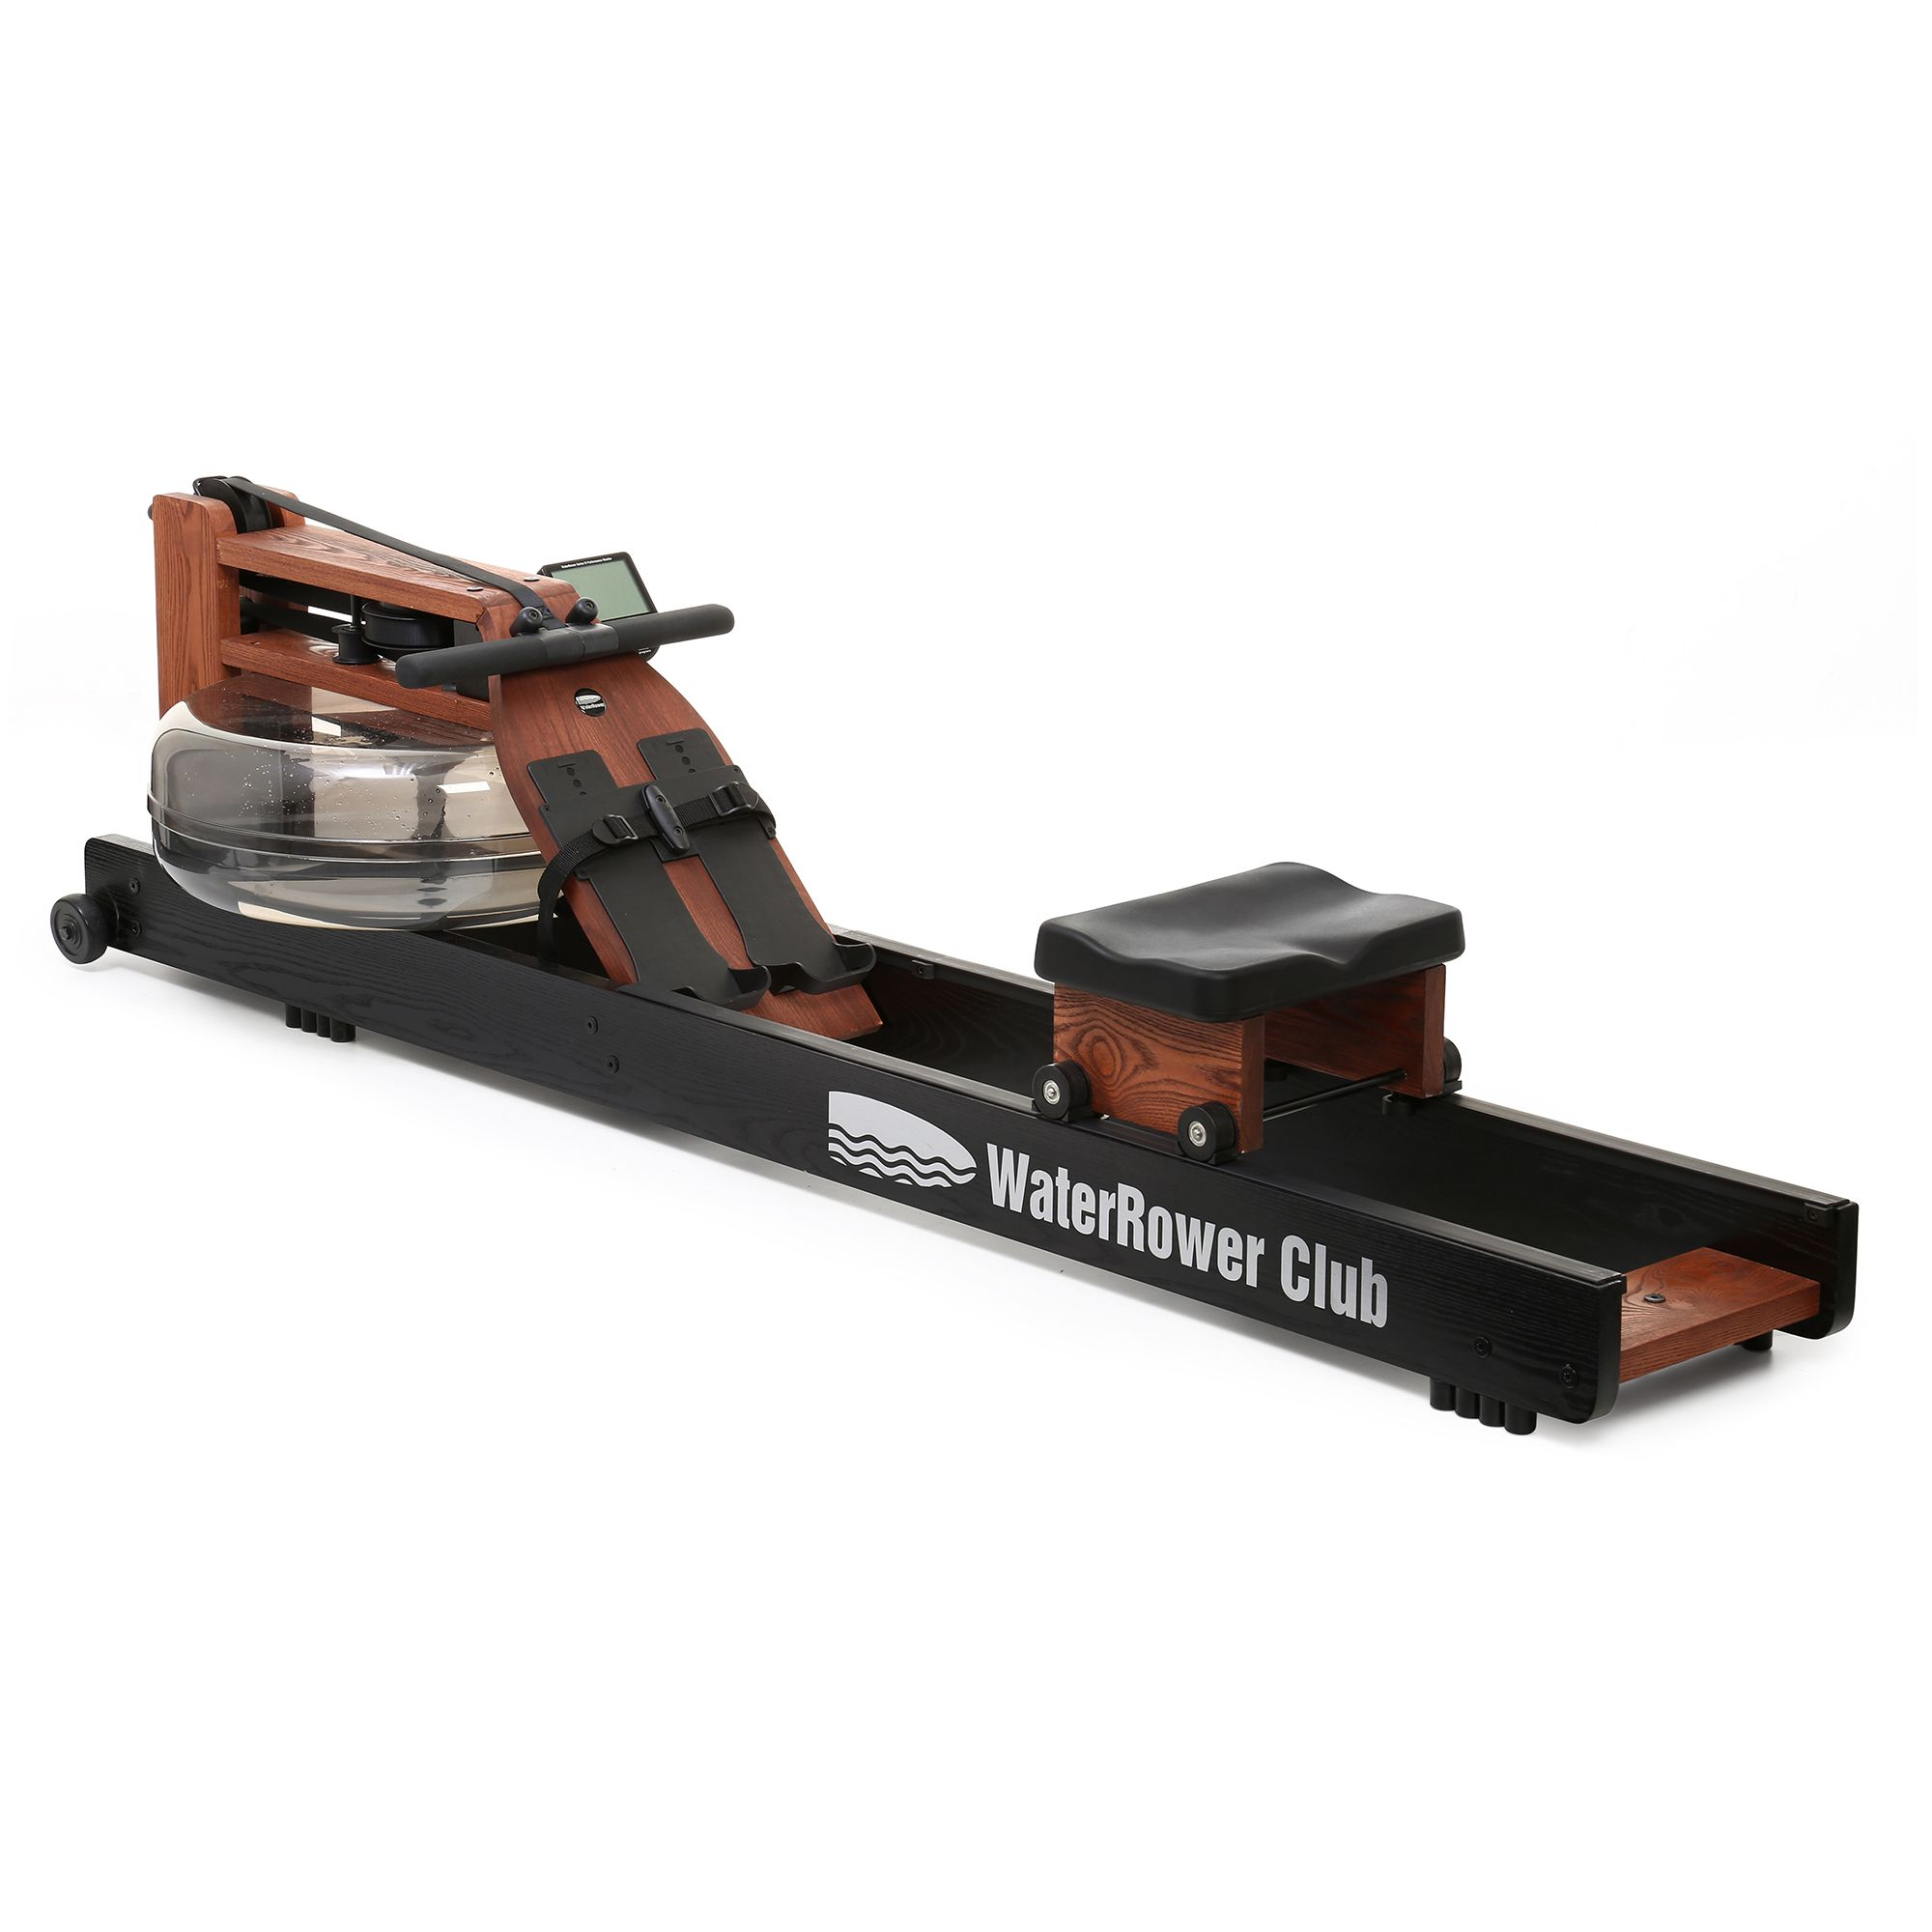 Waterrower club rowing machine with s monitor